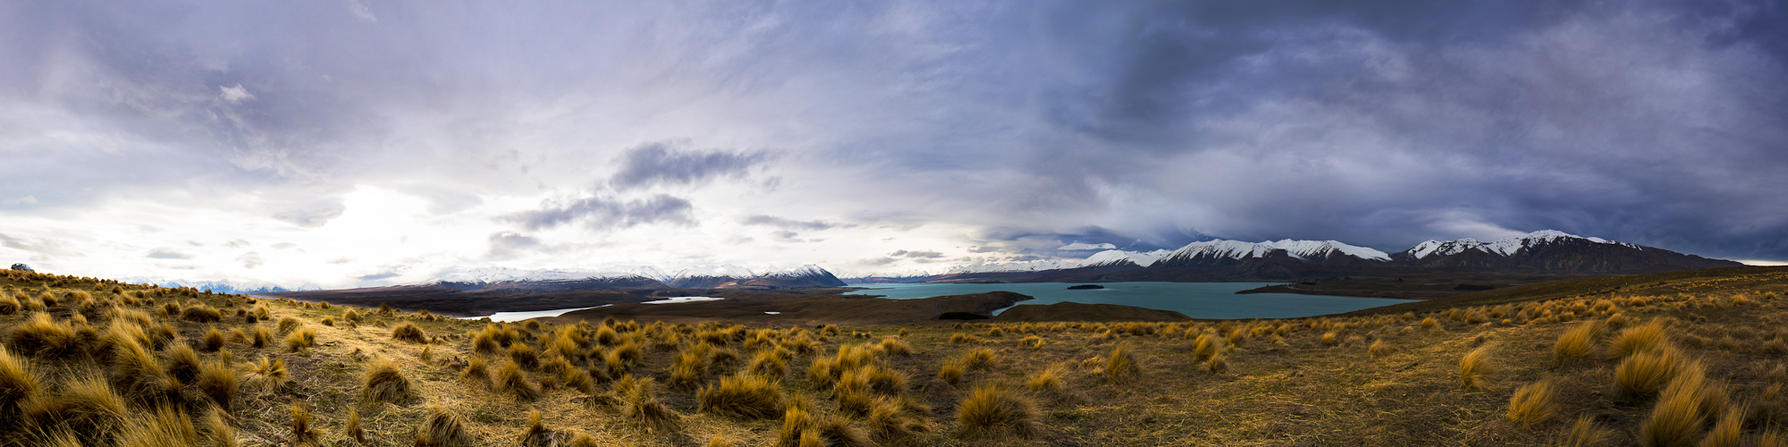 Mackenzie Country Panoramic by Niv24